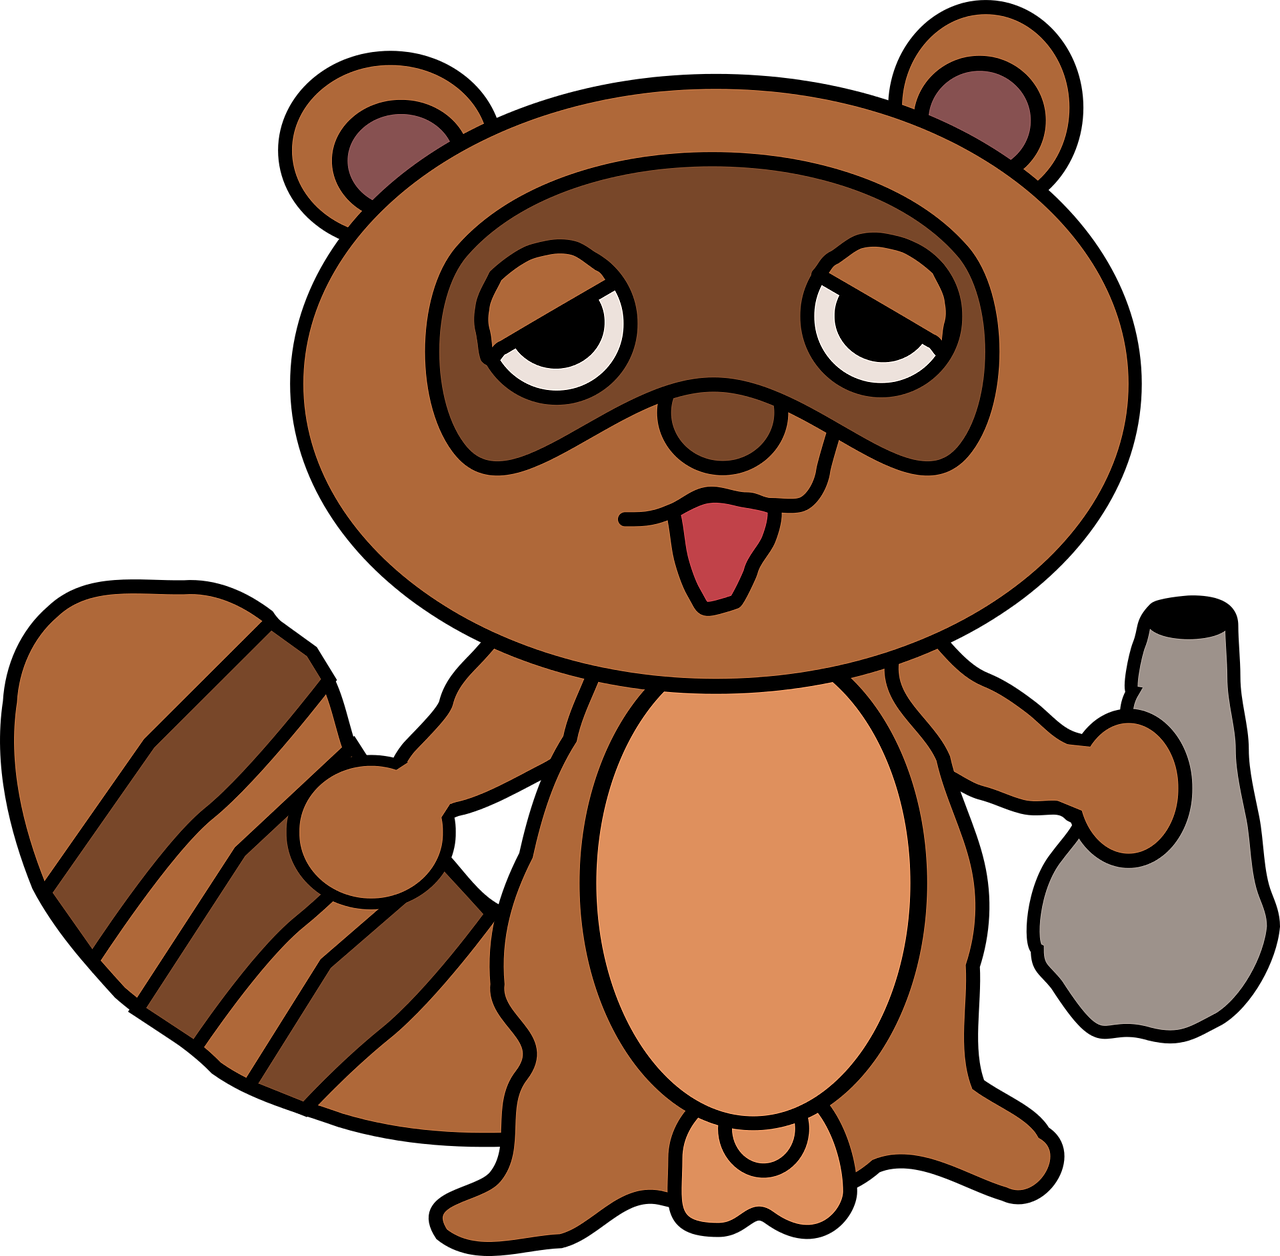 Animal Cartoon Cartoon Animals Png Picpng